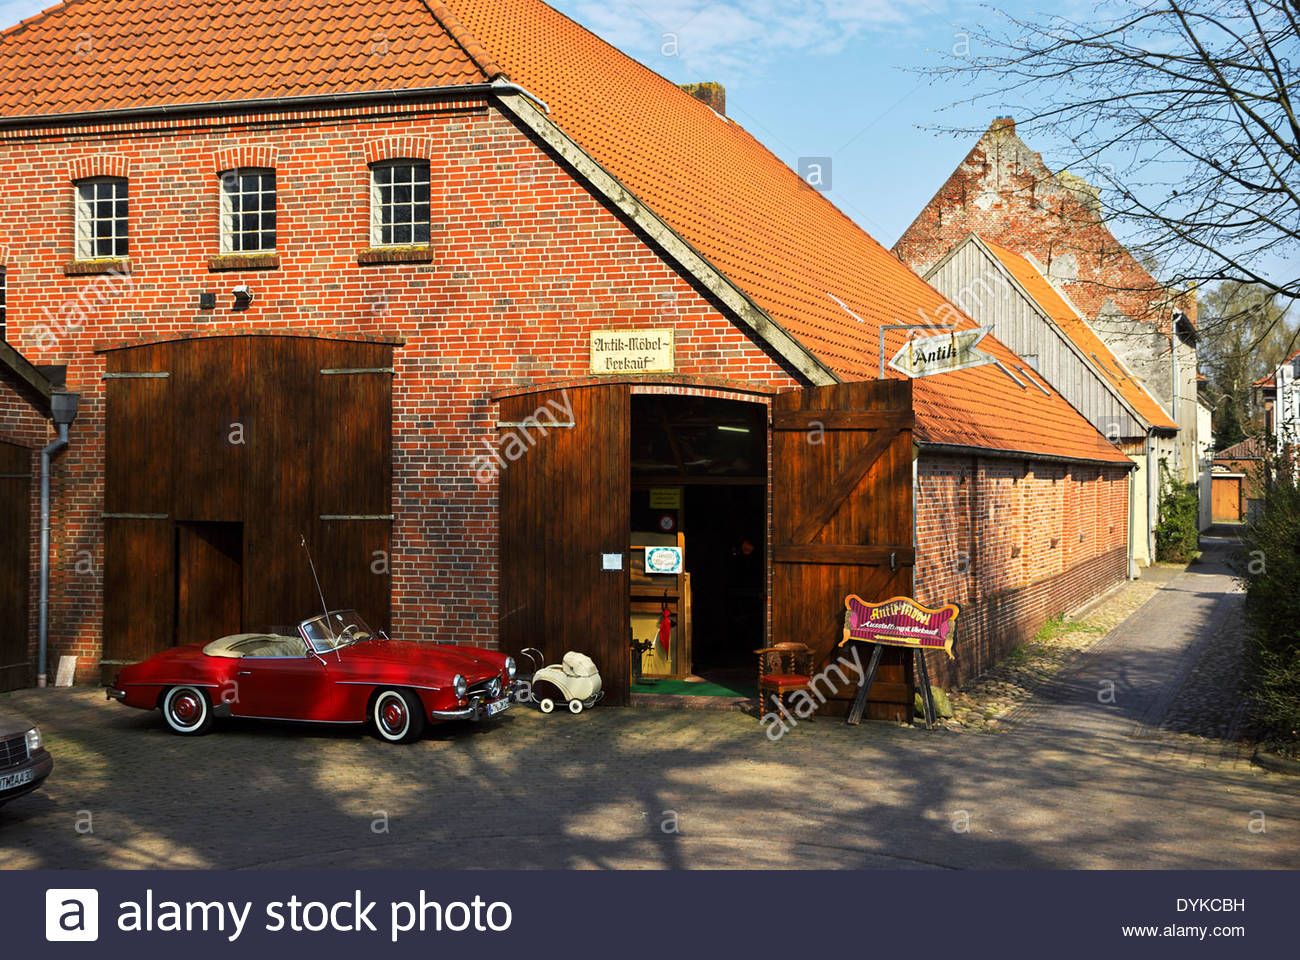 A vintage Mercedes Benz 190SL and a smaller buggy are parked in front of Antik-Möbel-Verkauf in Esens, Germany. - Stock Image